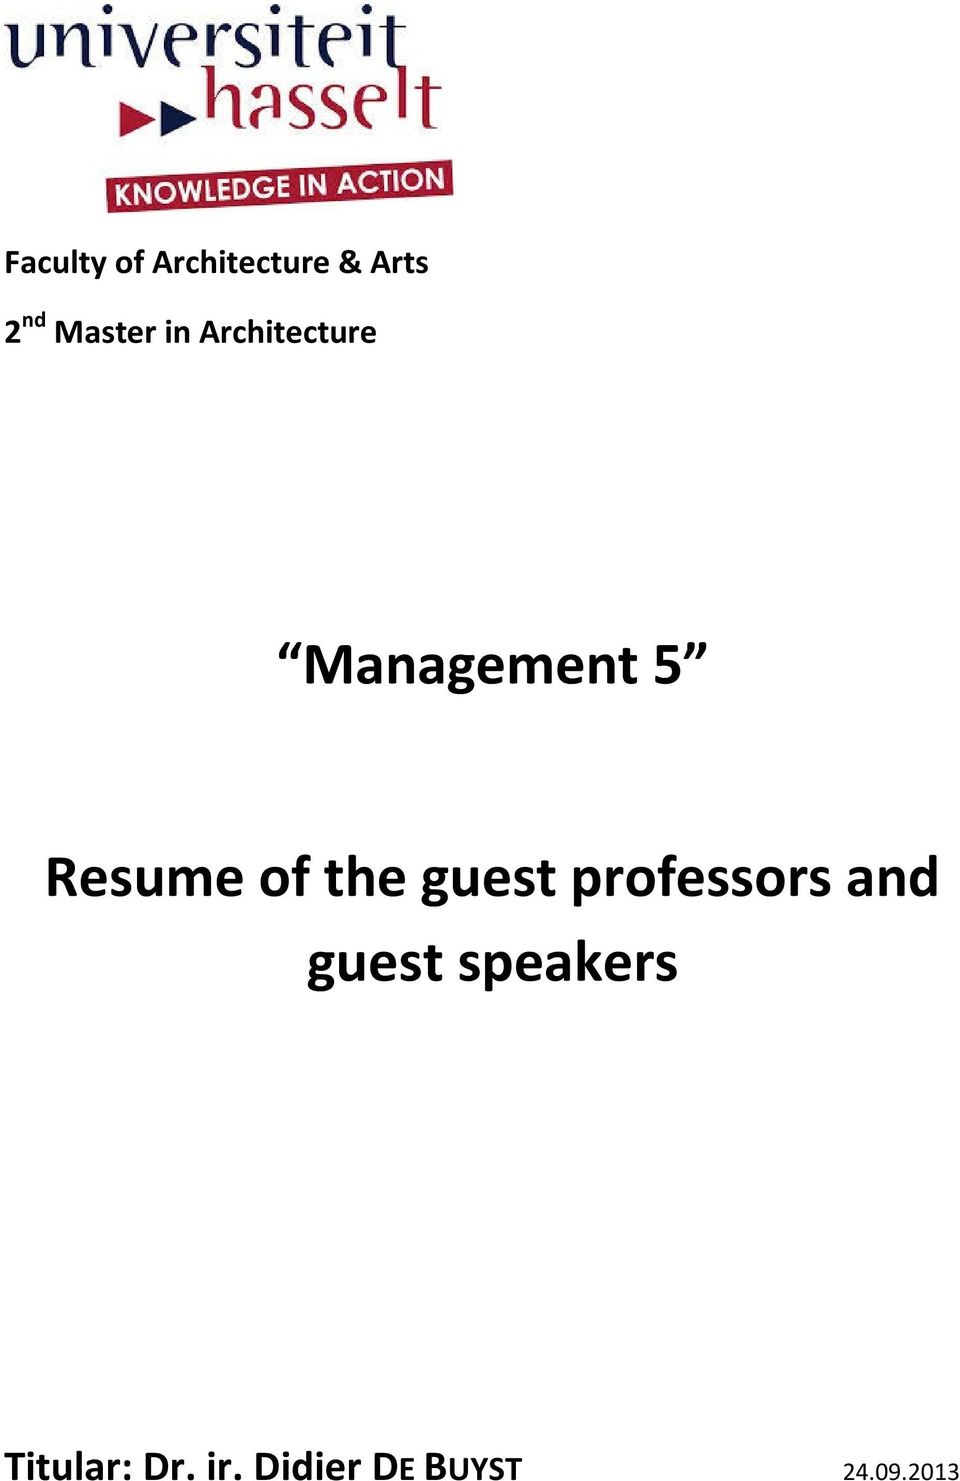 Resume of the guest professors and guest